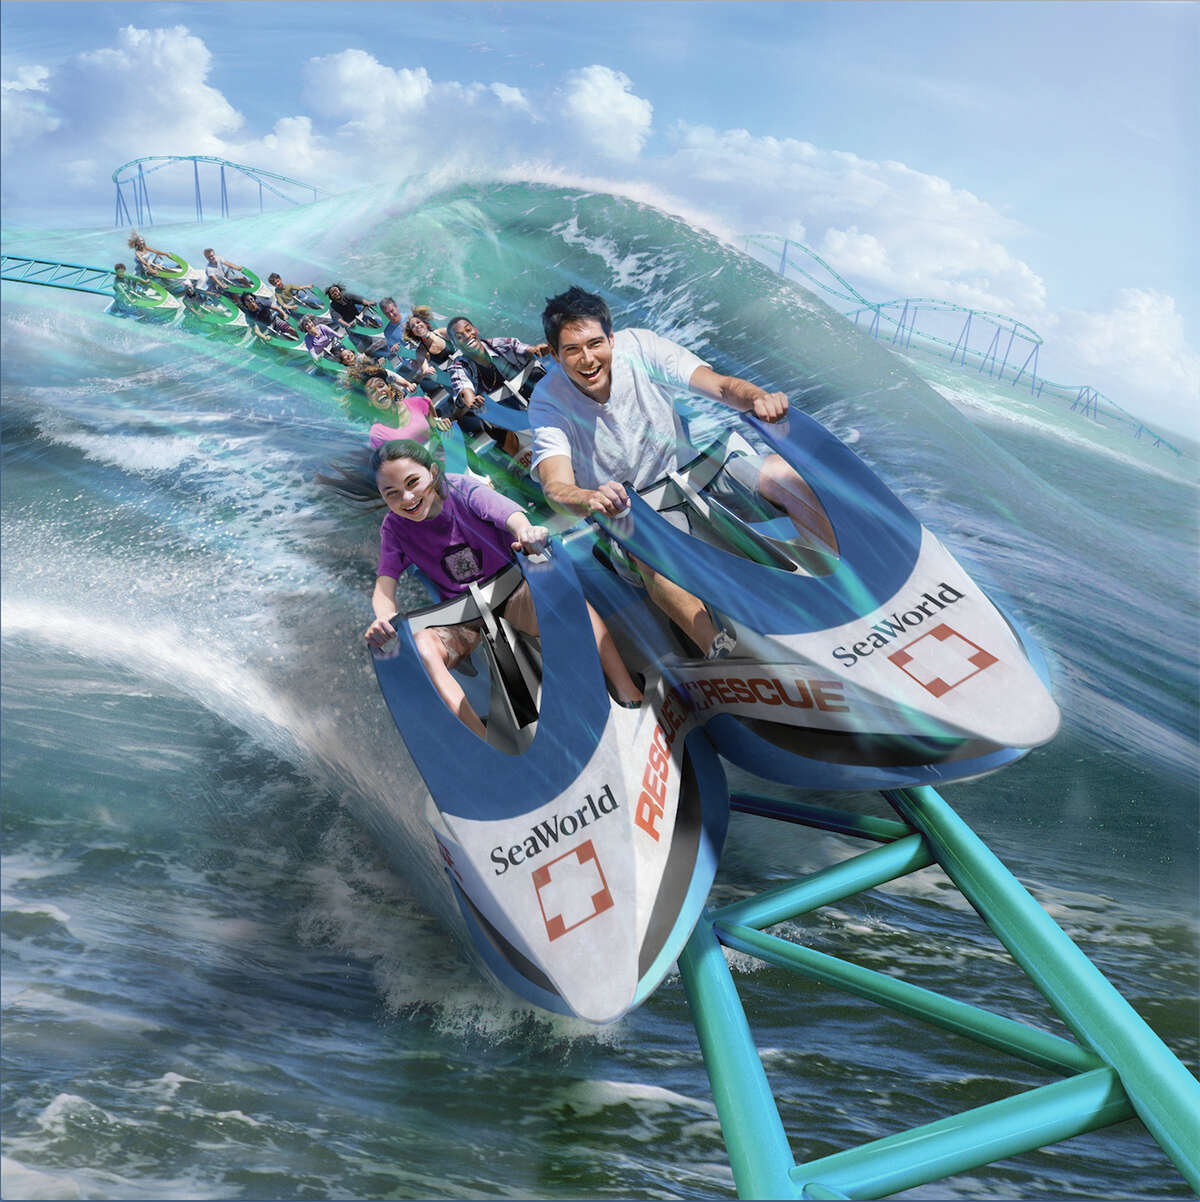 New roller coasters are always big news, and SeaWorld San Antonio's latest attraction likely will bring some coaster enthusiasts to town. That said, it should be noted that Wave Breaker: The Rescue Coaster is aimed at families, not extreme coaster fanatics. You only have to be 4 feet tall to ride the launch-style coaster, which mimics the Jet Ski-type personal watercraft SeaWorld animal rescue teams use to reach marine animals in distress. The coaster has a top speed of 44 mph, and its biggest drop is 61 feet. Coaster debuts Friday. SeaWorld San Antonio, 10500 SeaWorld Drive. Park hours 10 a.m.-8 p.m. Friday, 10 a.m.-10 p.m. Saturday. Single-day tickets $64 Friday, $74 Saturday in advance online; hours and price varies by day; season passes are available. seaworld.com/san-antonio -- Jim Kiest